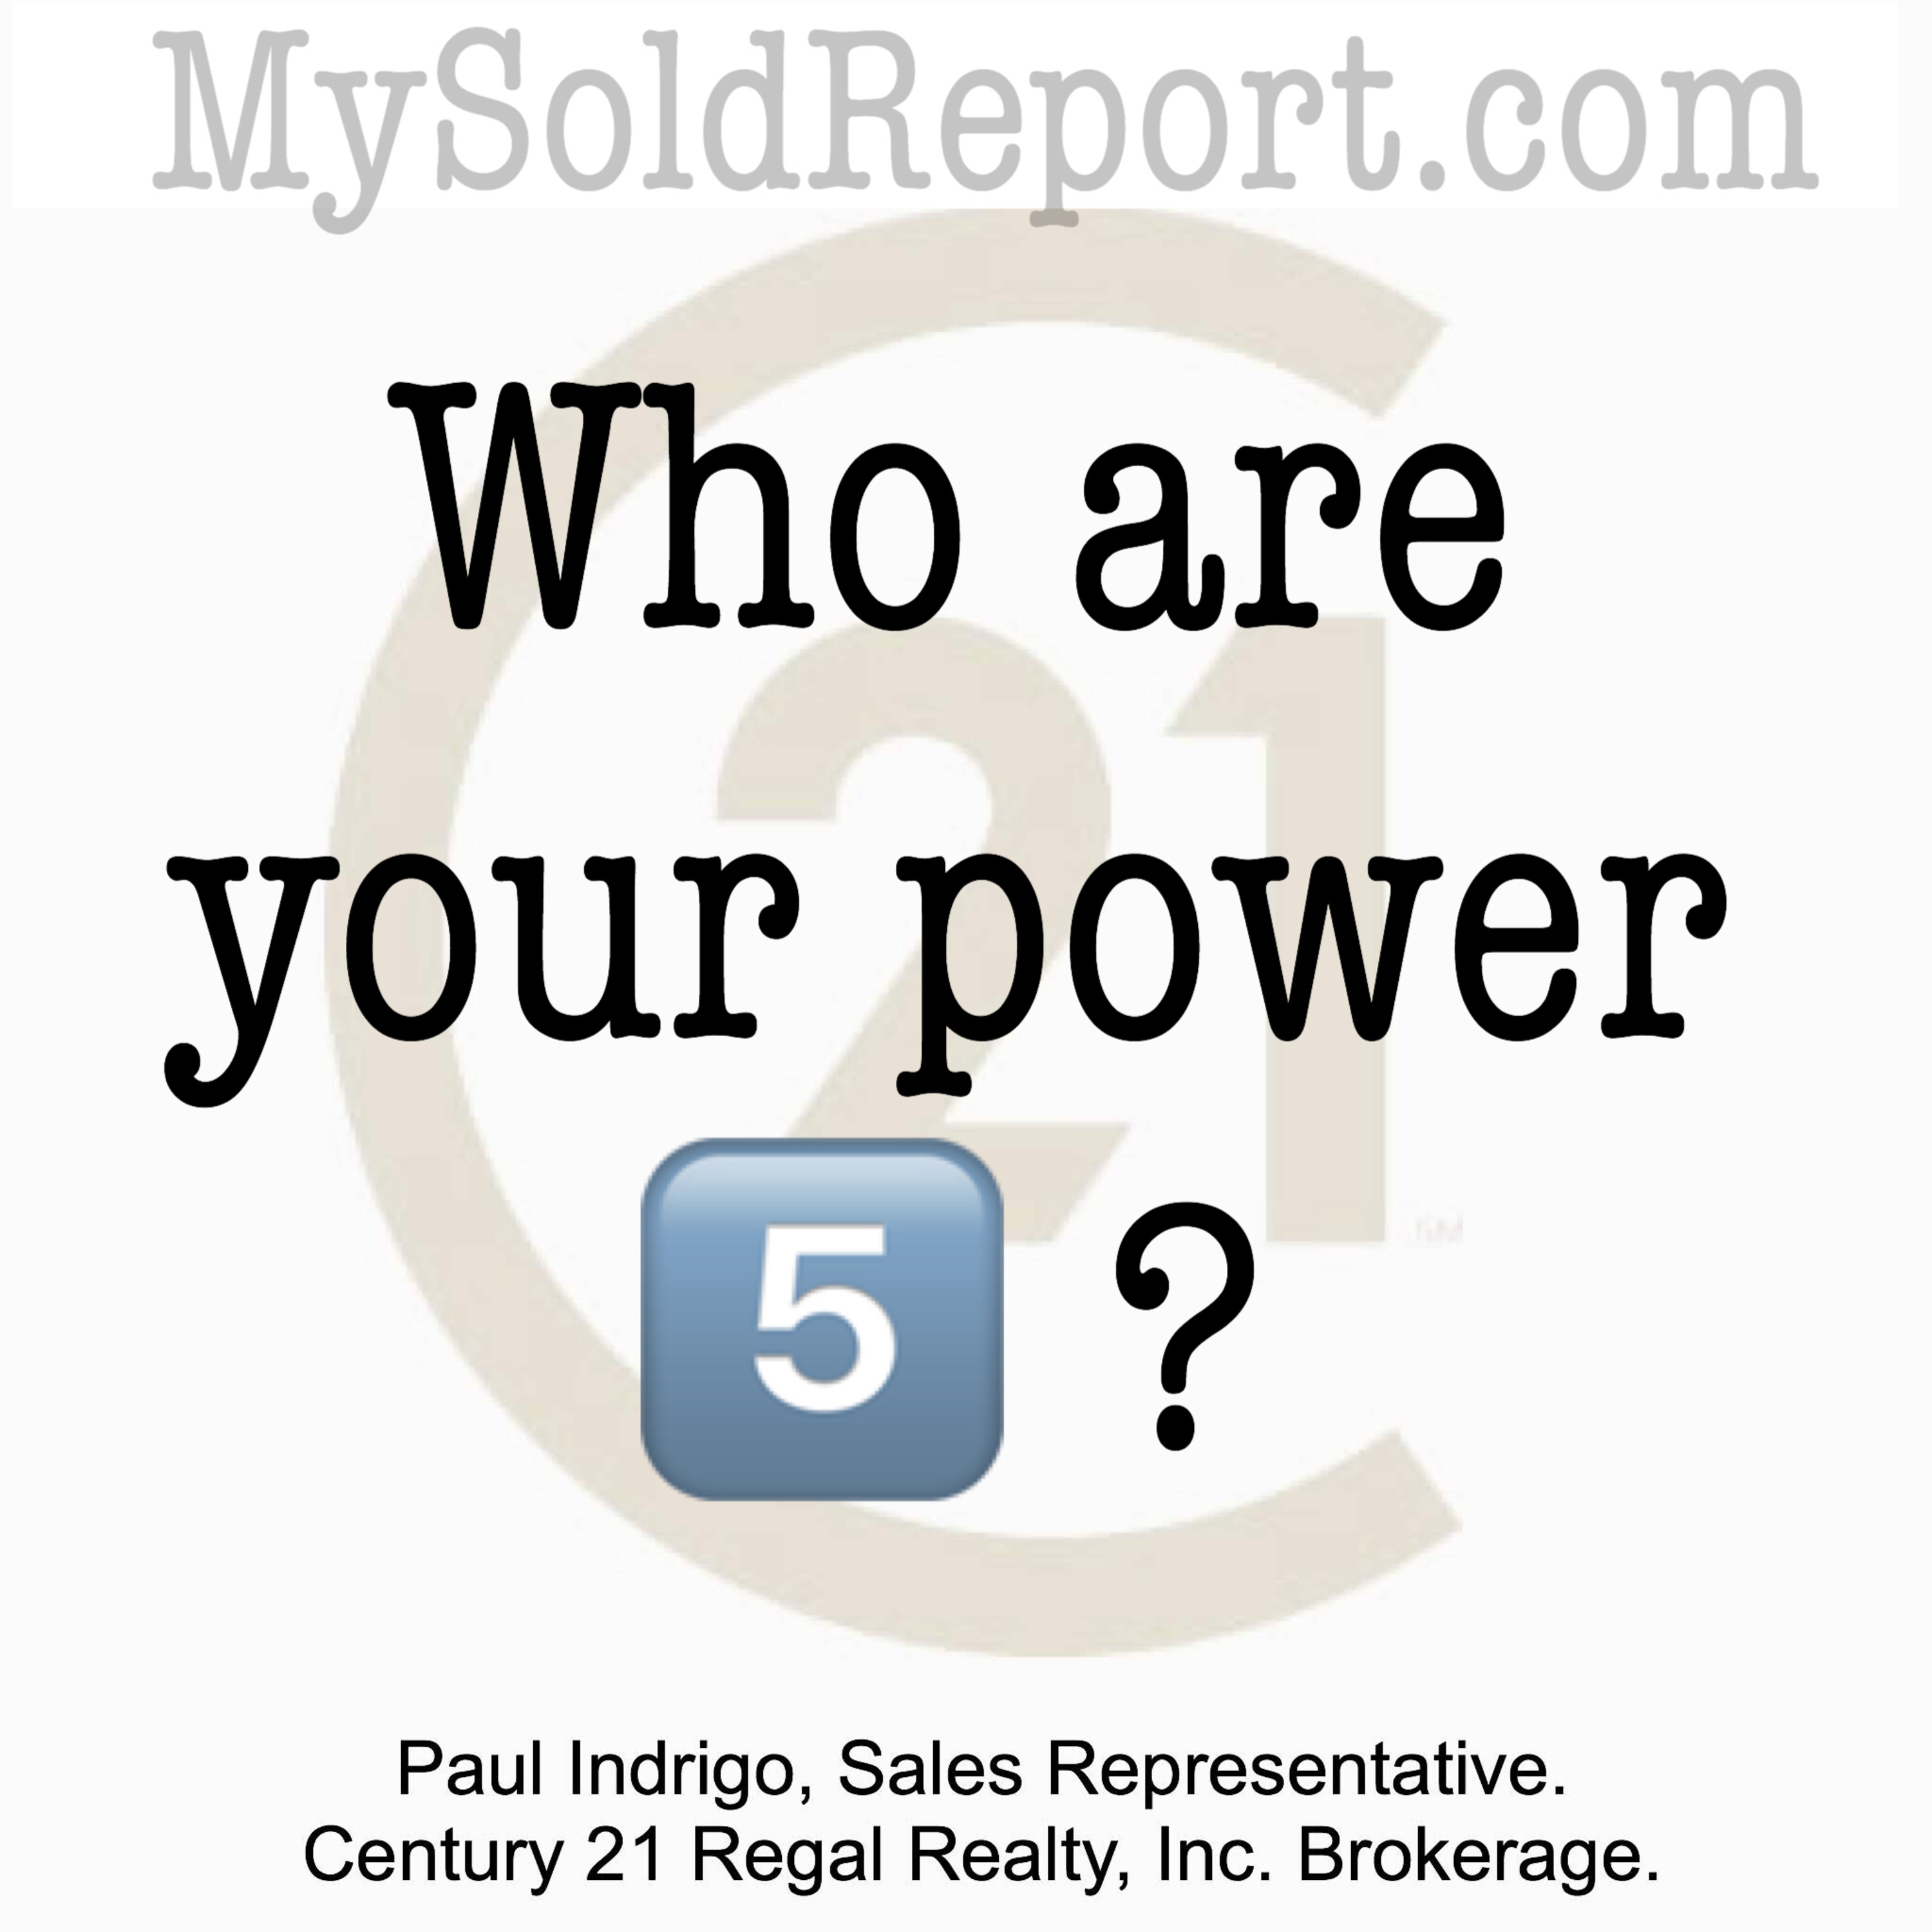 Episode 123: Who are YOUR power 5? Aka the good people in your life